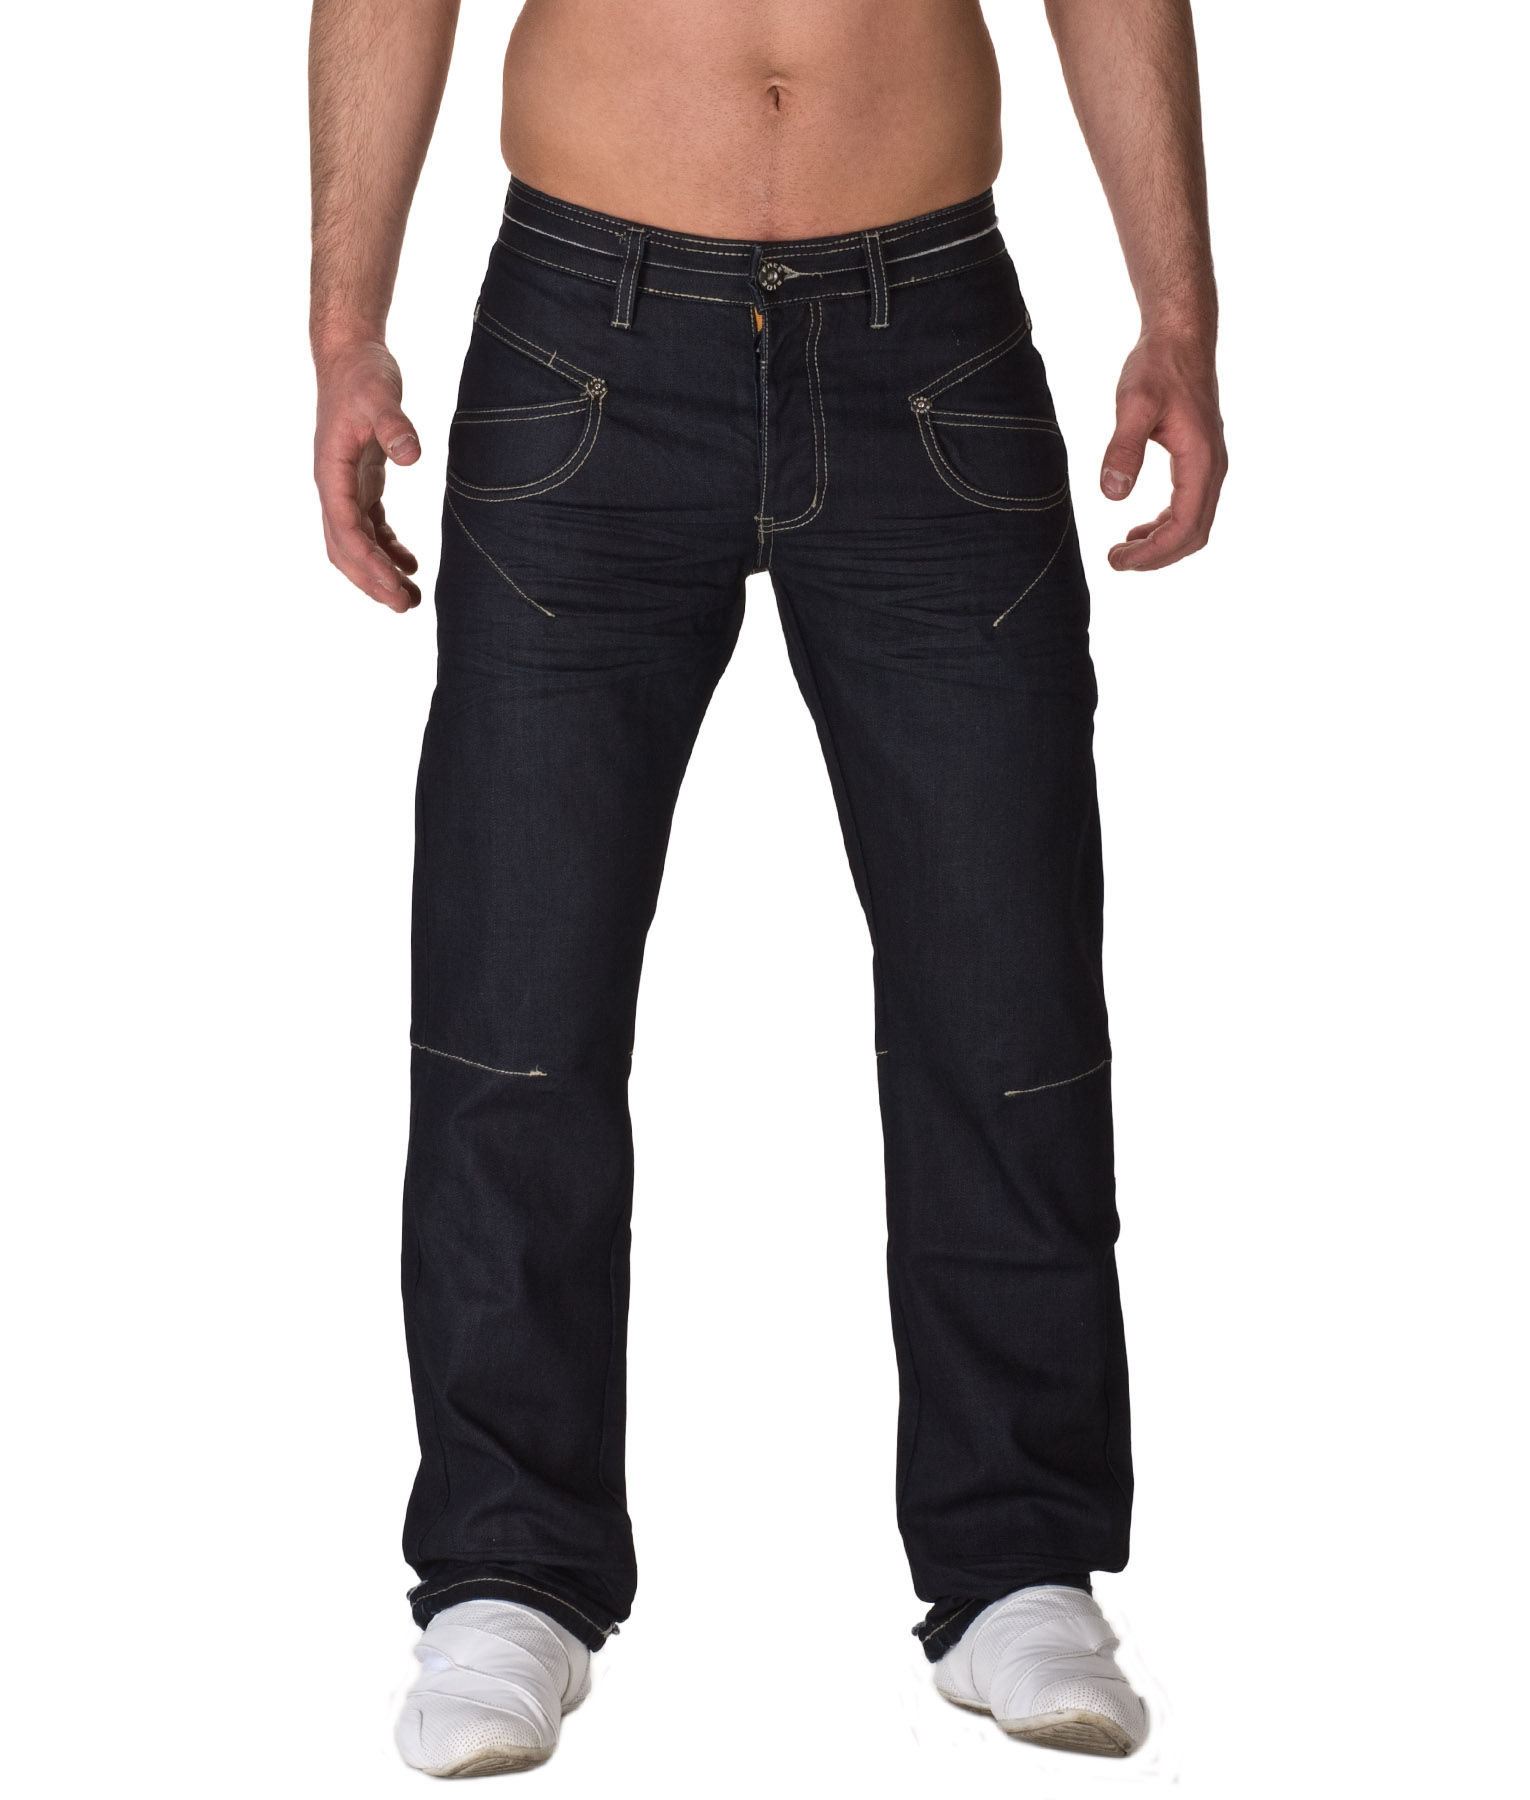 clipart jeans day - photo #47